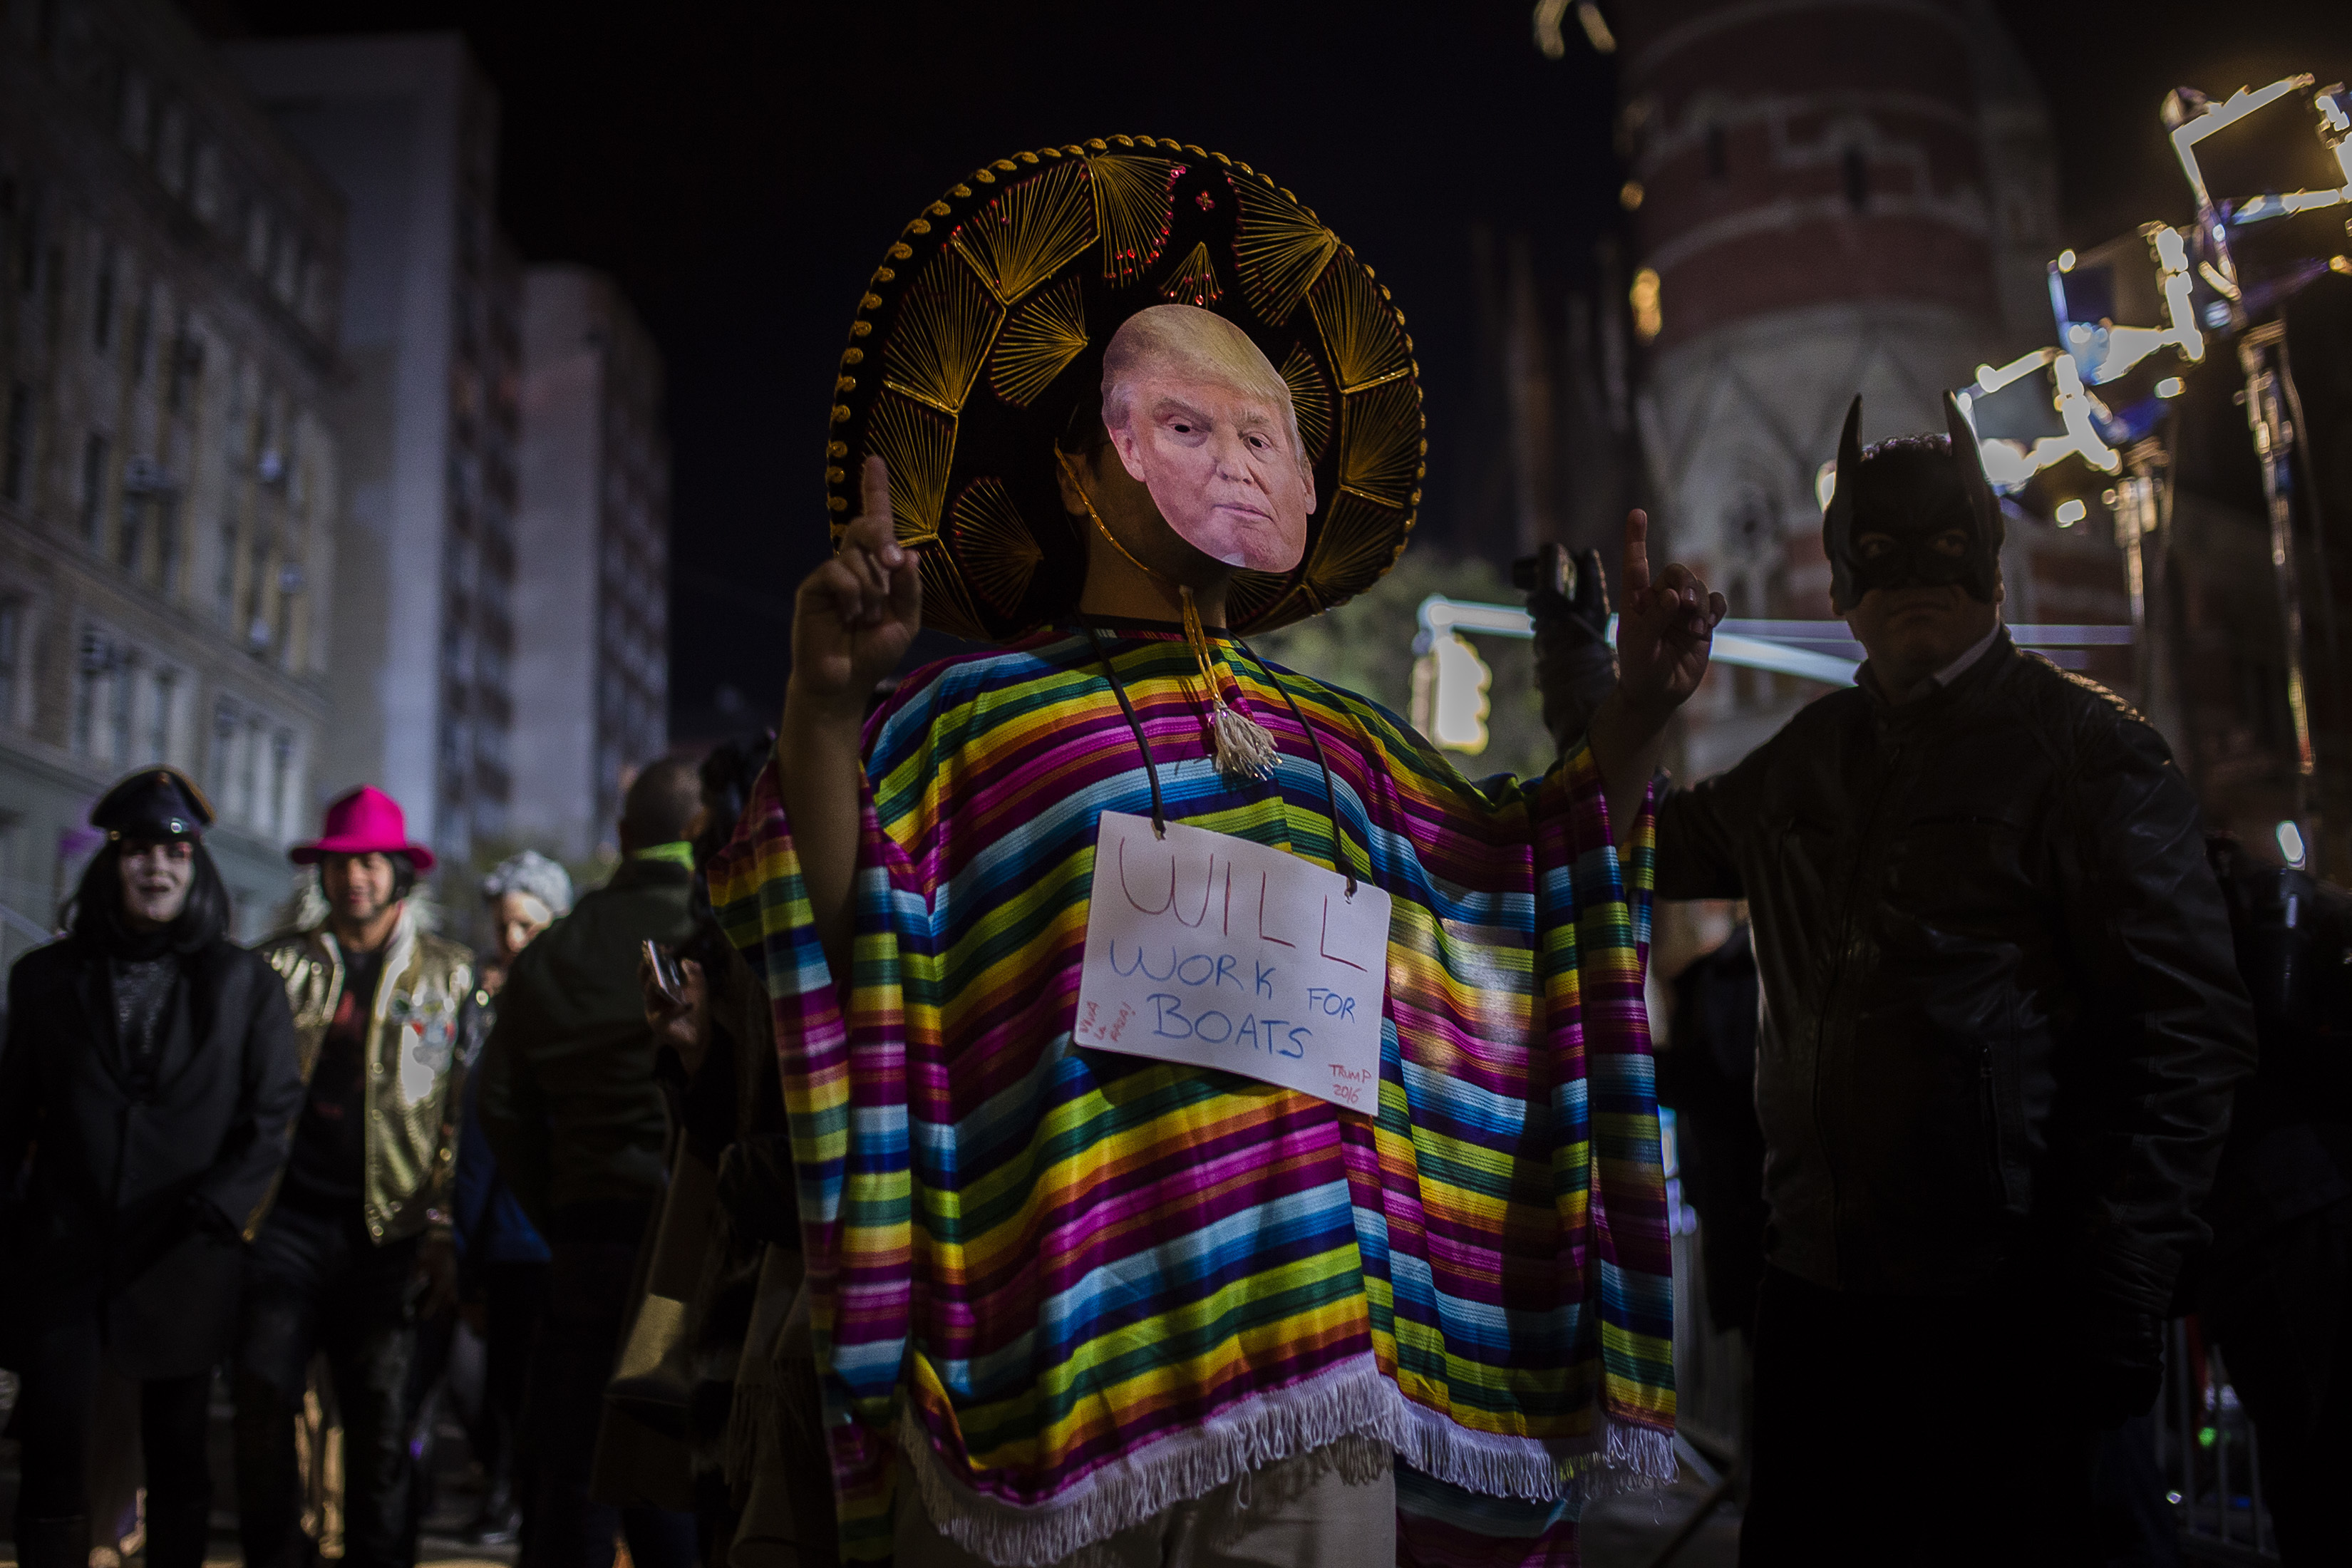 """<div class=""""meta image-caption""""><div class=""""origin-logo origin-image none""""><span>none</span></div><span class=""""caption-text"""">A reveler wearing a Donald Trump mask marches during the Greenwich Village Halloween Parade in New York, Monday, Oct. 31, 2016. (AP Photo/Andres Kudacki)</span></div>"""